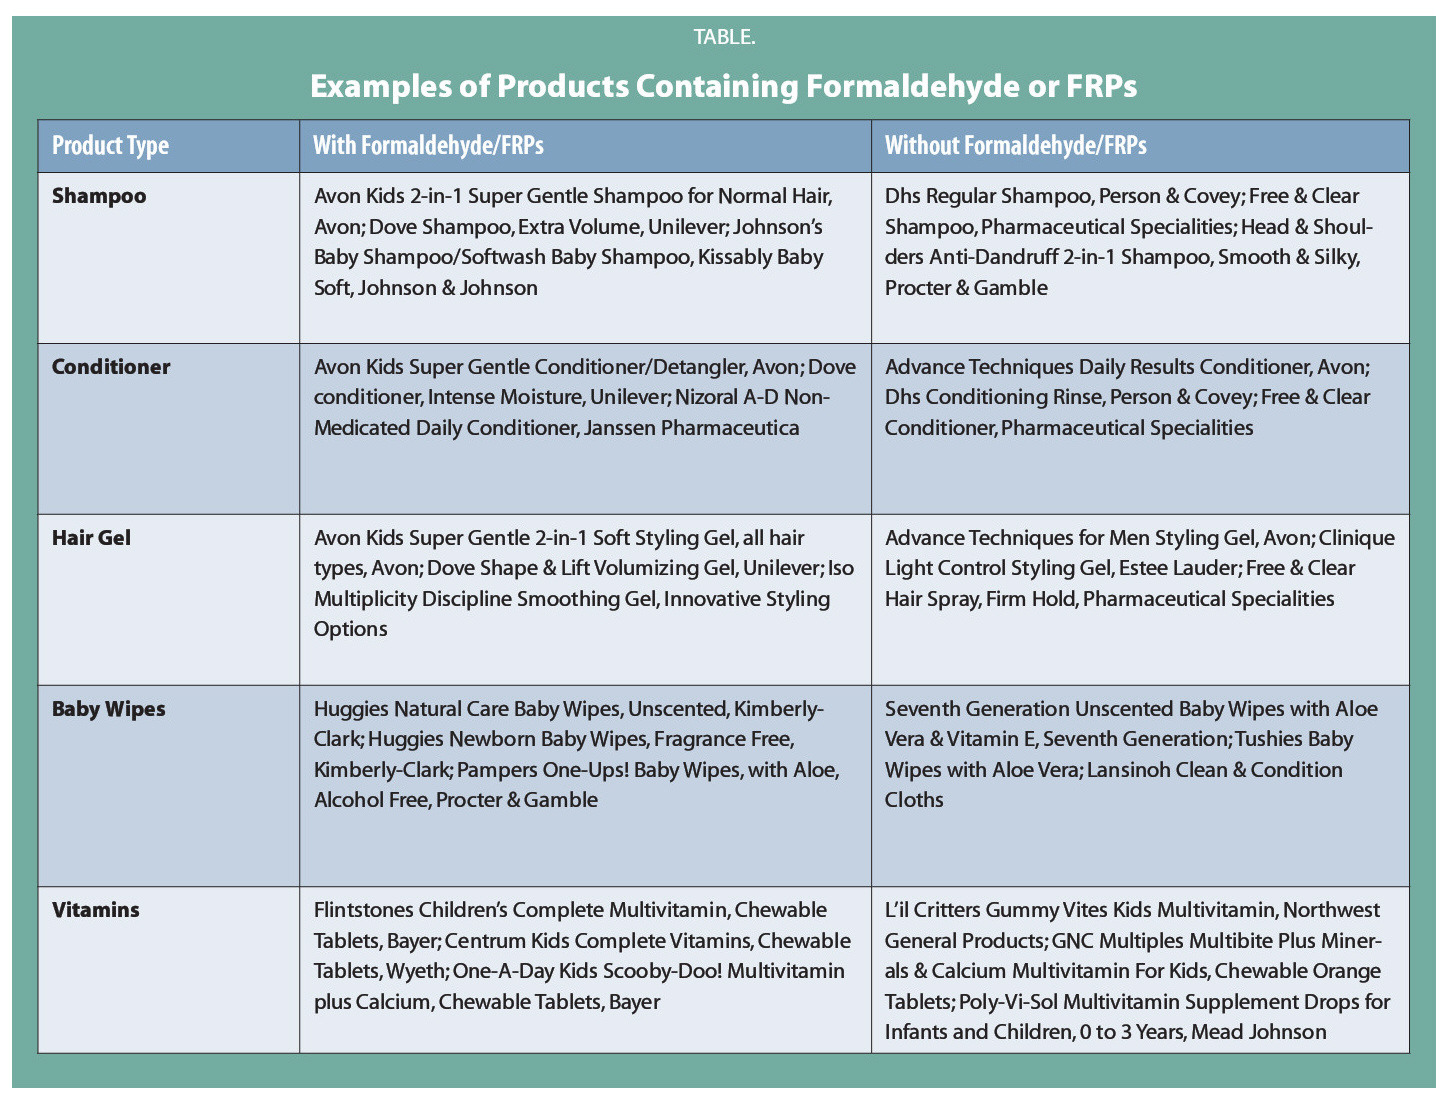 TABLE.Examples of Products Containing Formaldehyde or FRPs